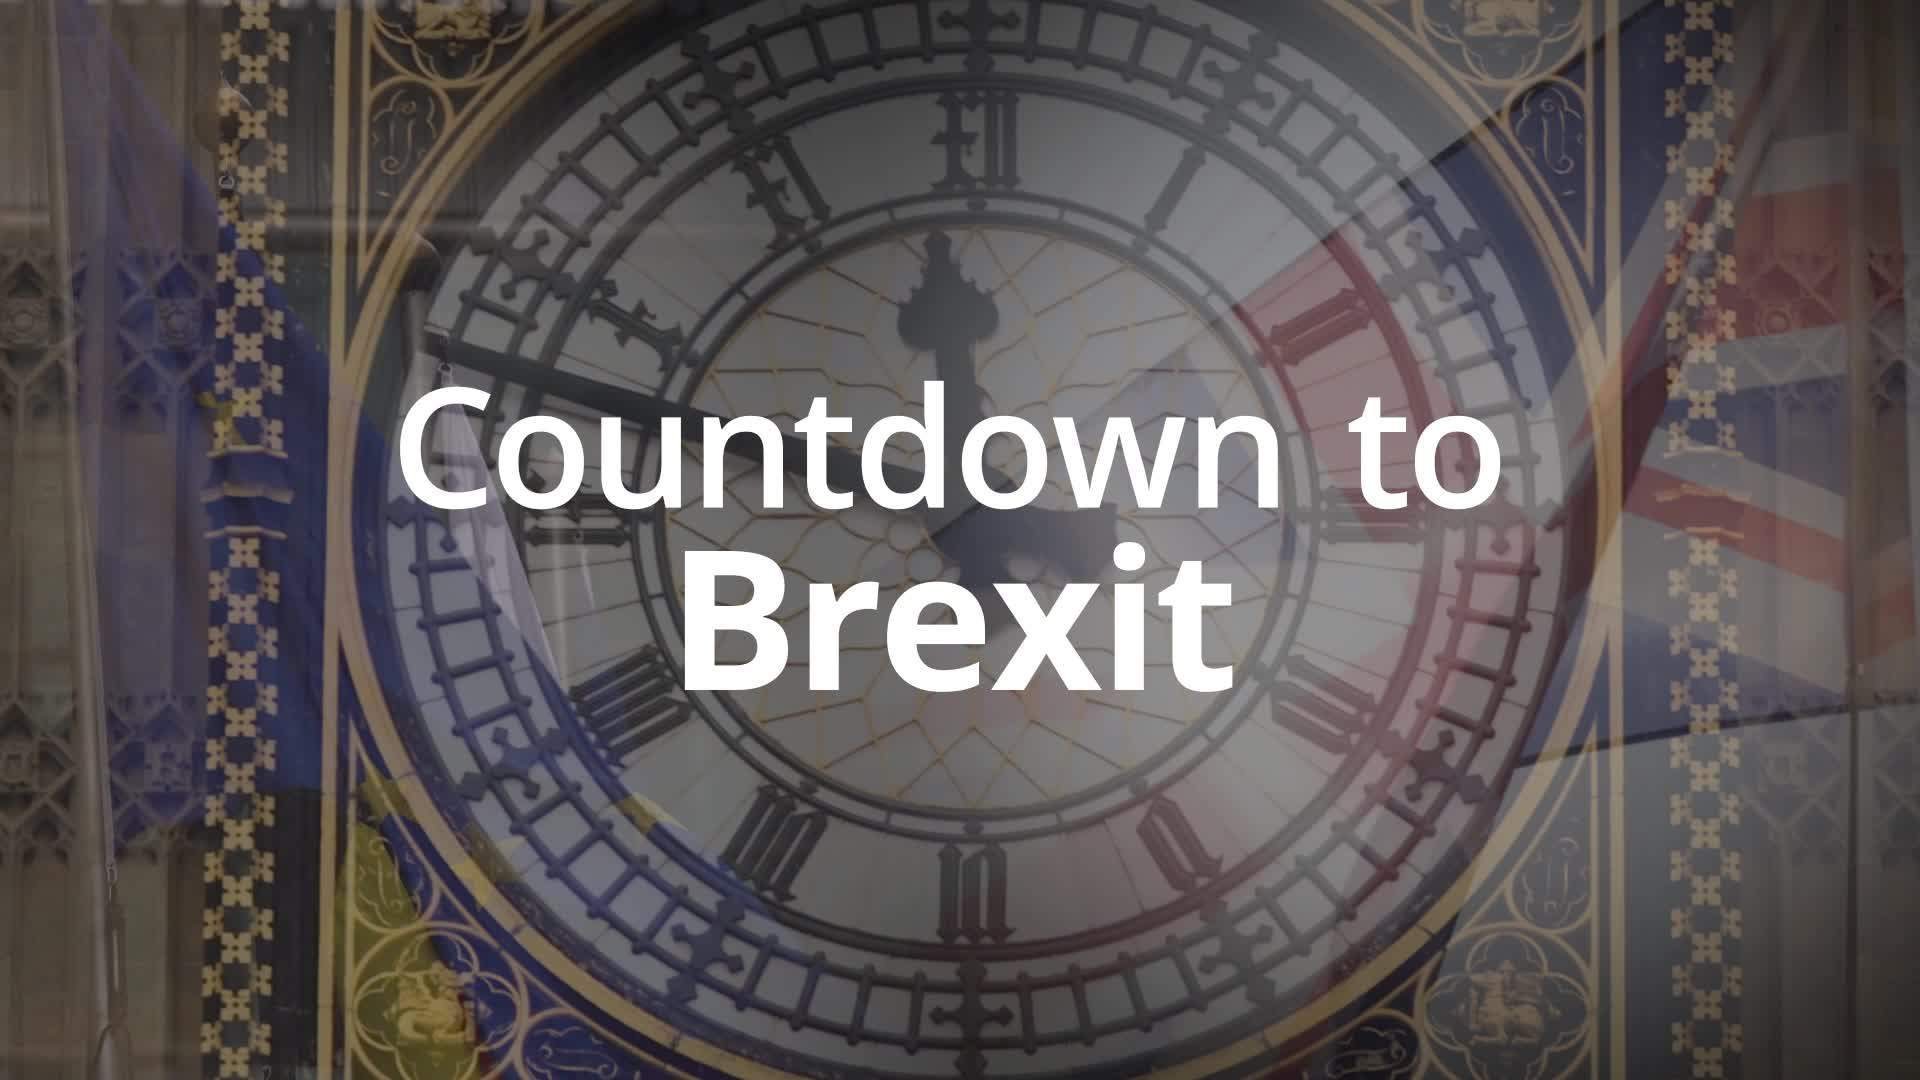 Brexit: 36 days until Britain is scheduled to leave the EU